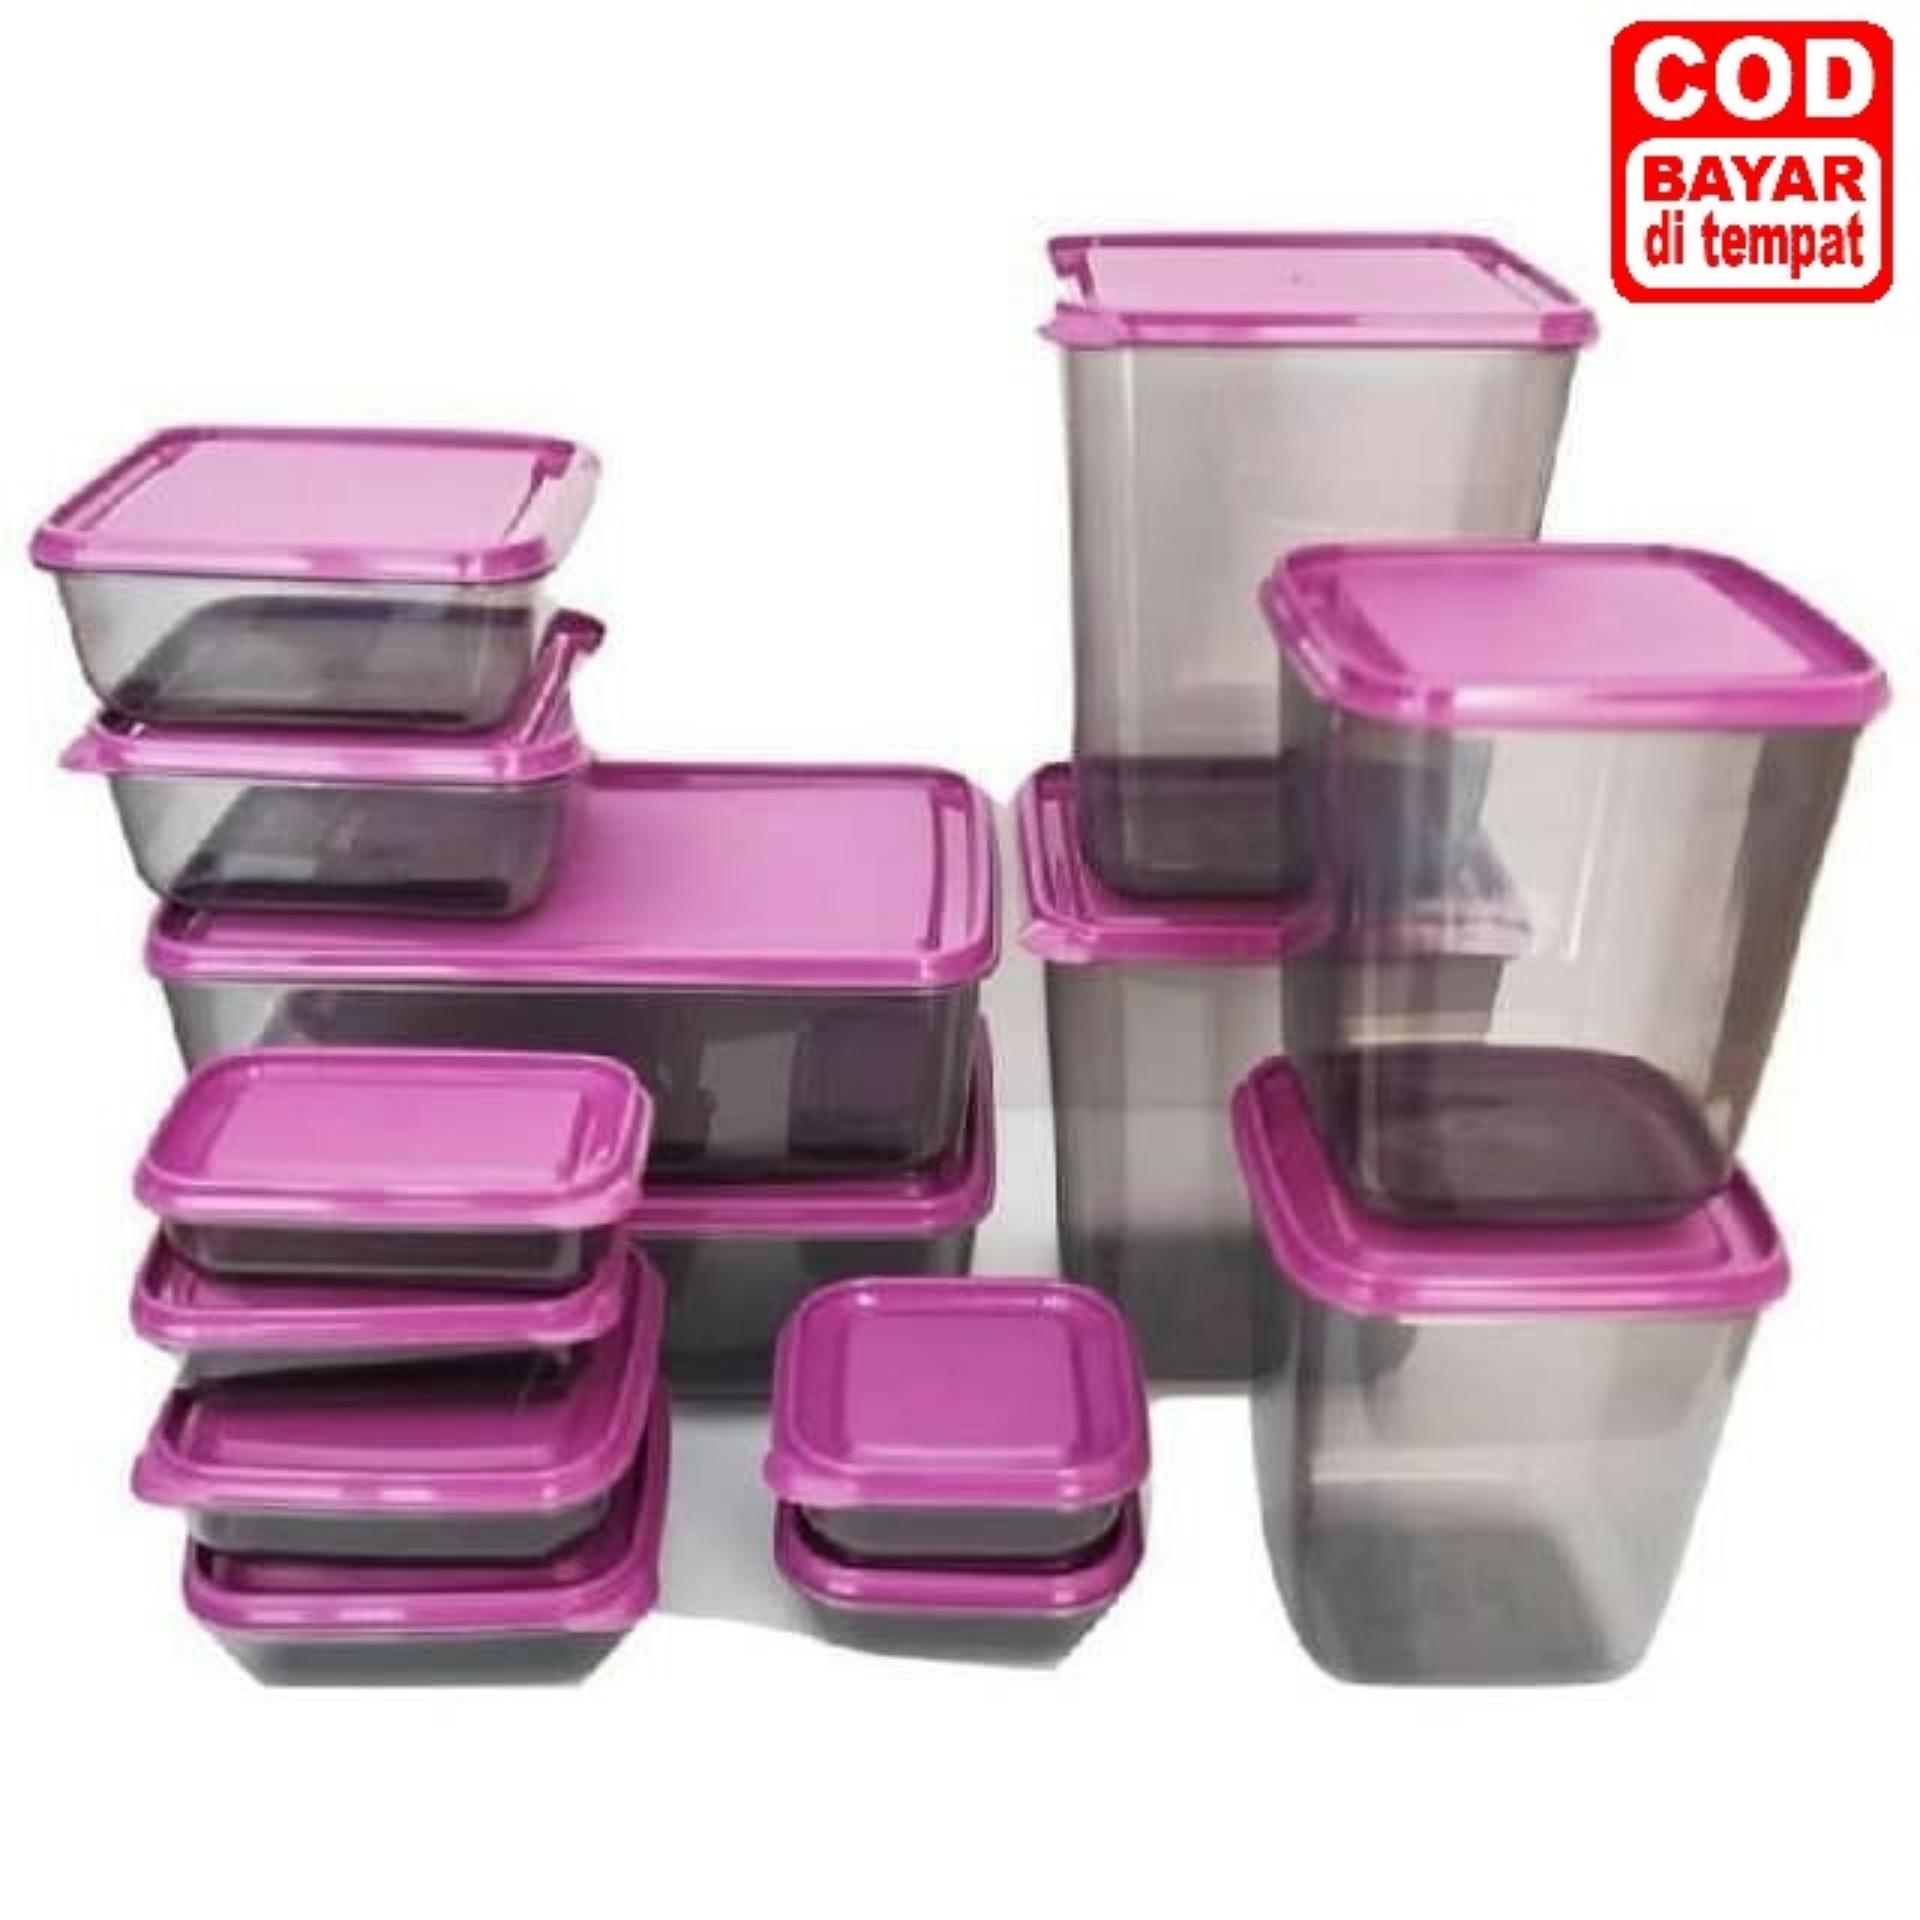 Toples Calista Sealware - Toples Calista Plastik Bening - Isi 14pc